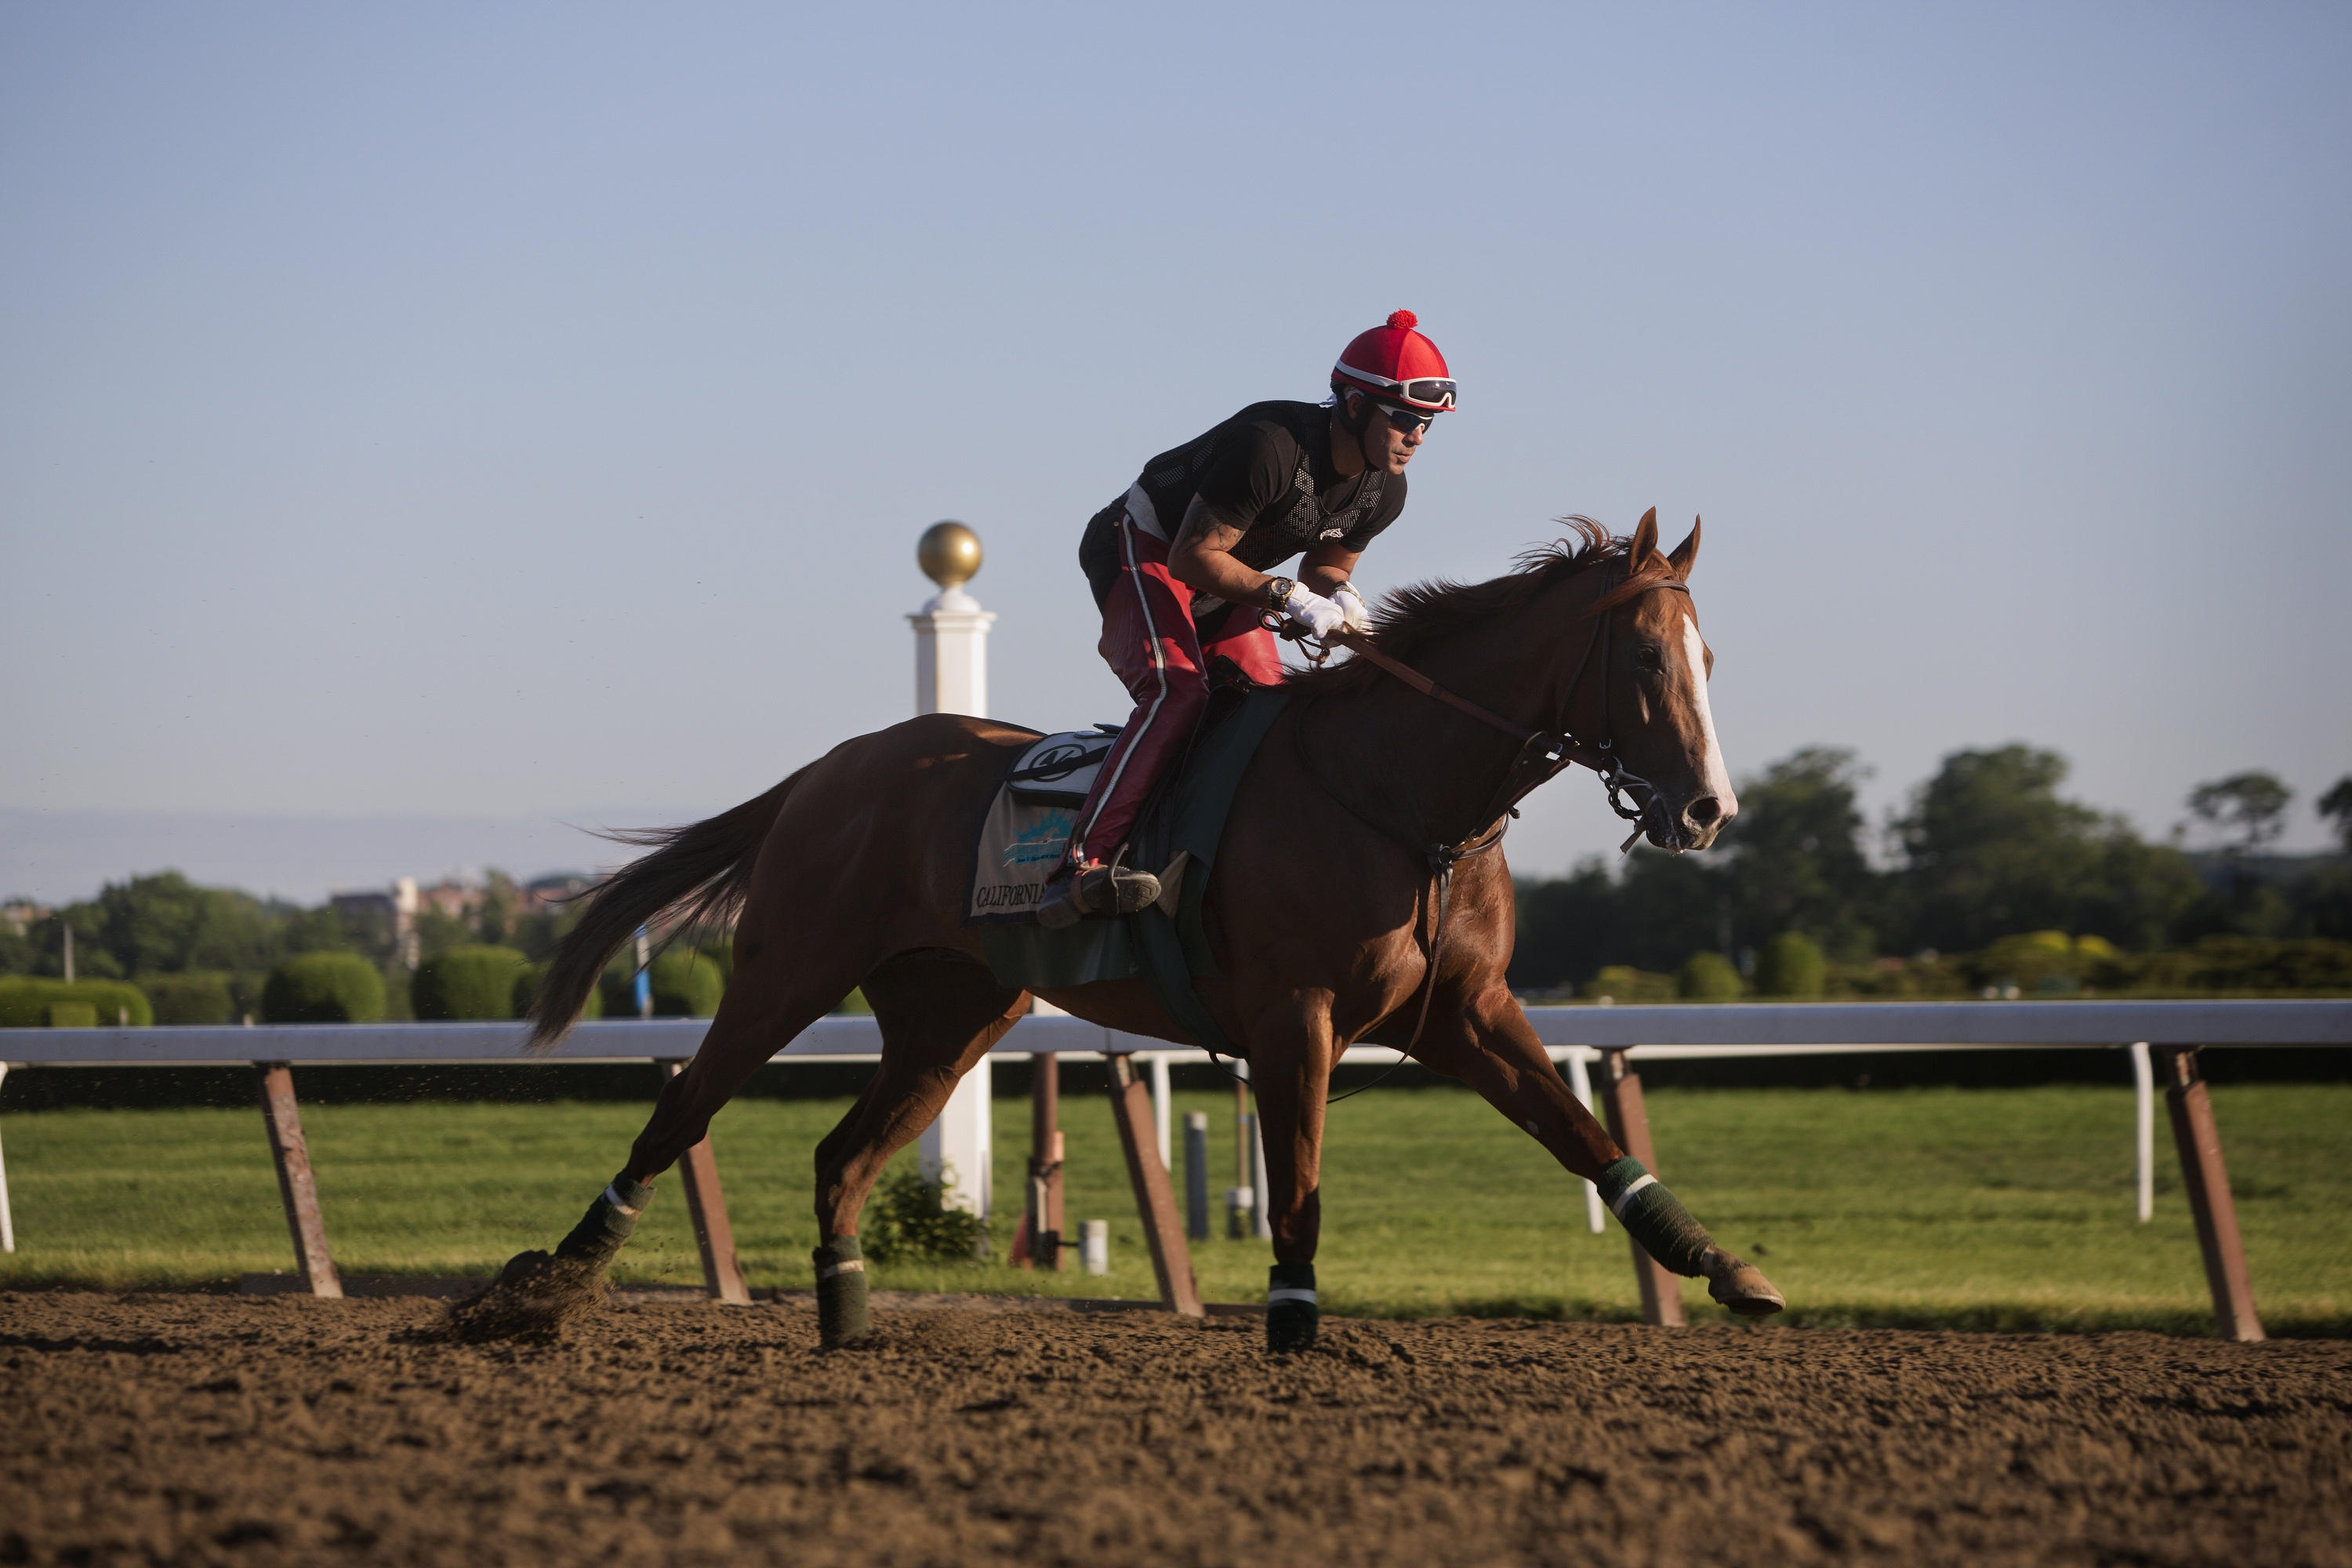 California Chrome and exercise rider Willie Delgado get their morning workout in Friday at Belmont Park. Chrome tries to become the first Triple Crown winner since Affirmed in 1978 during tonight's Belmont Stakes race. (Victor J. Blue/The New York Times)